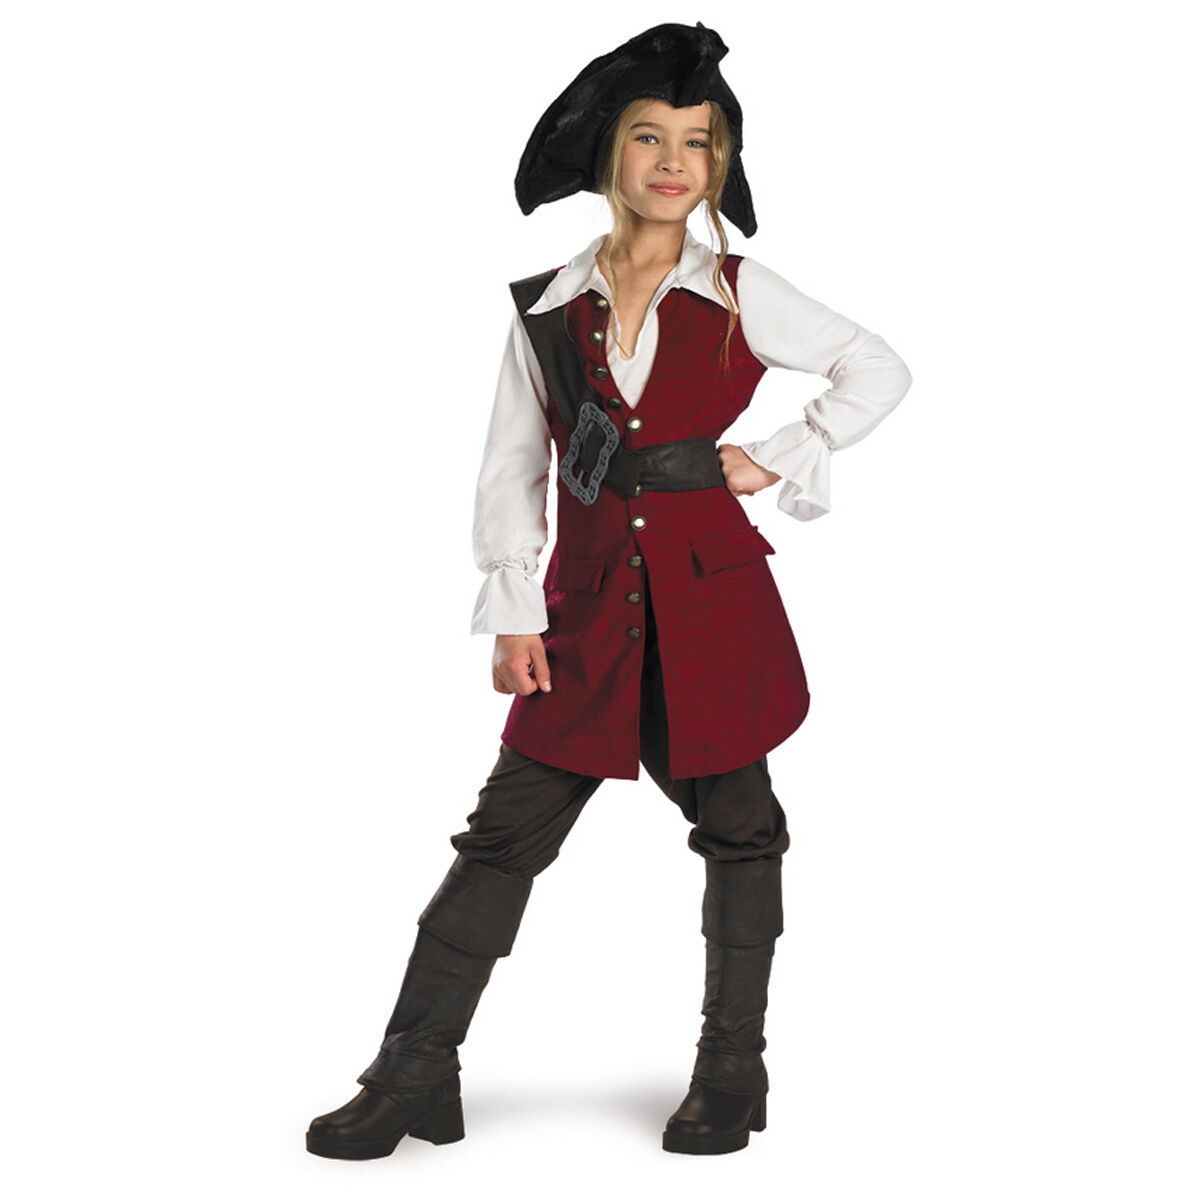 Pirates of the Caribbean - Elizabeth Swann Deluxe Child Costume